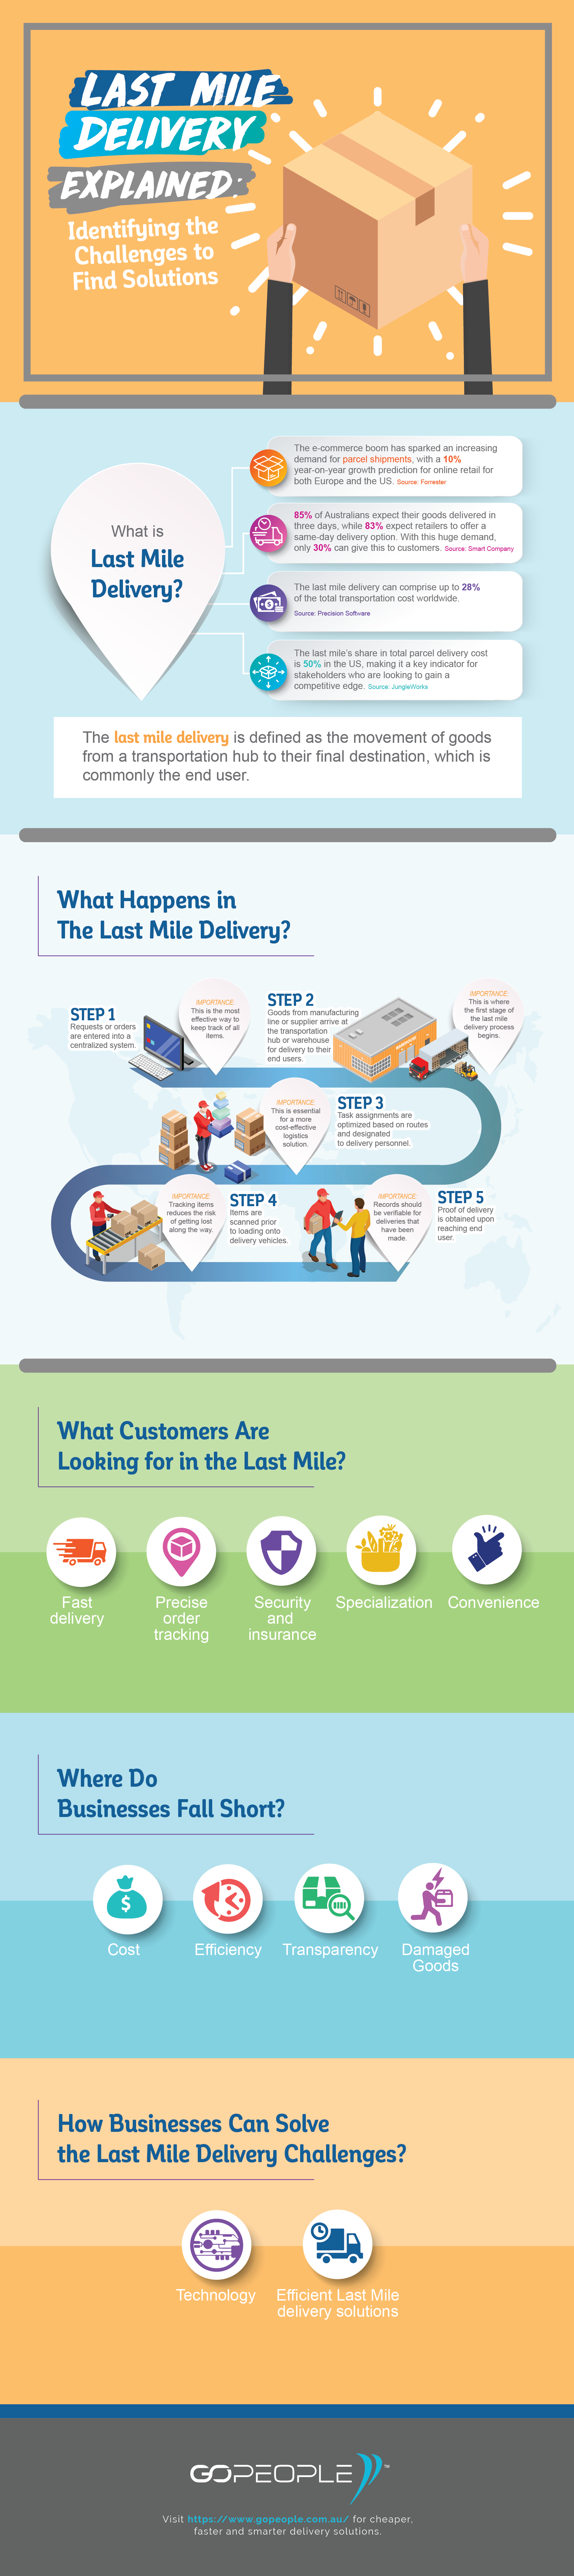 What Does Last Mile Delivery Mean Last Mile Delivery Startup